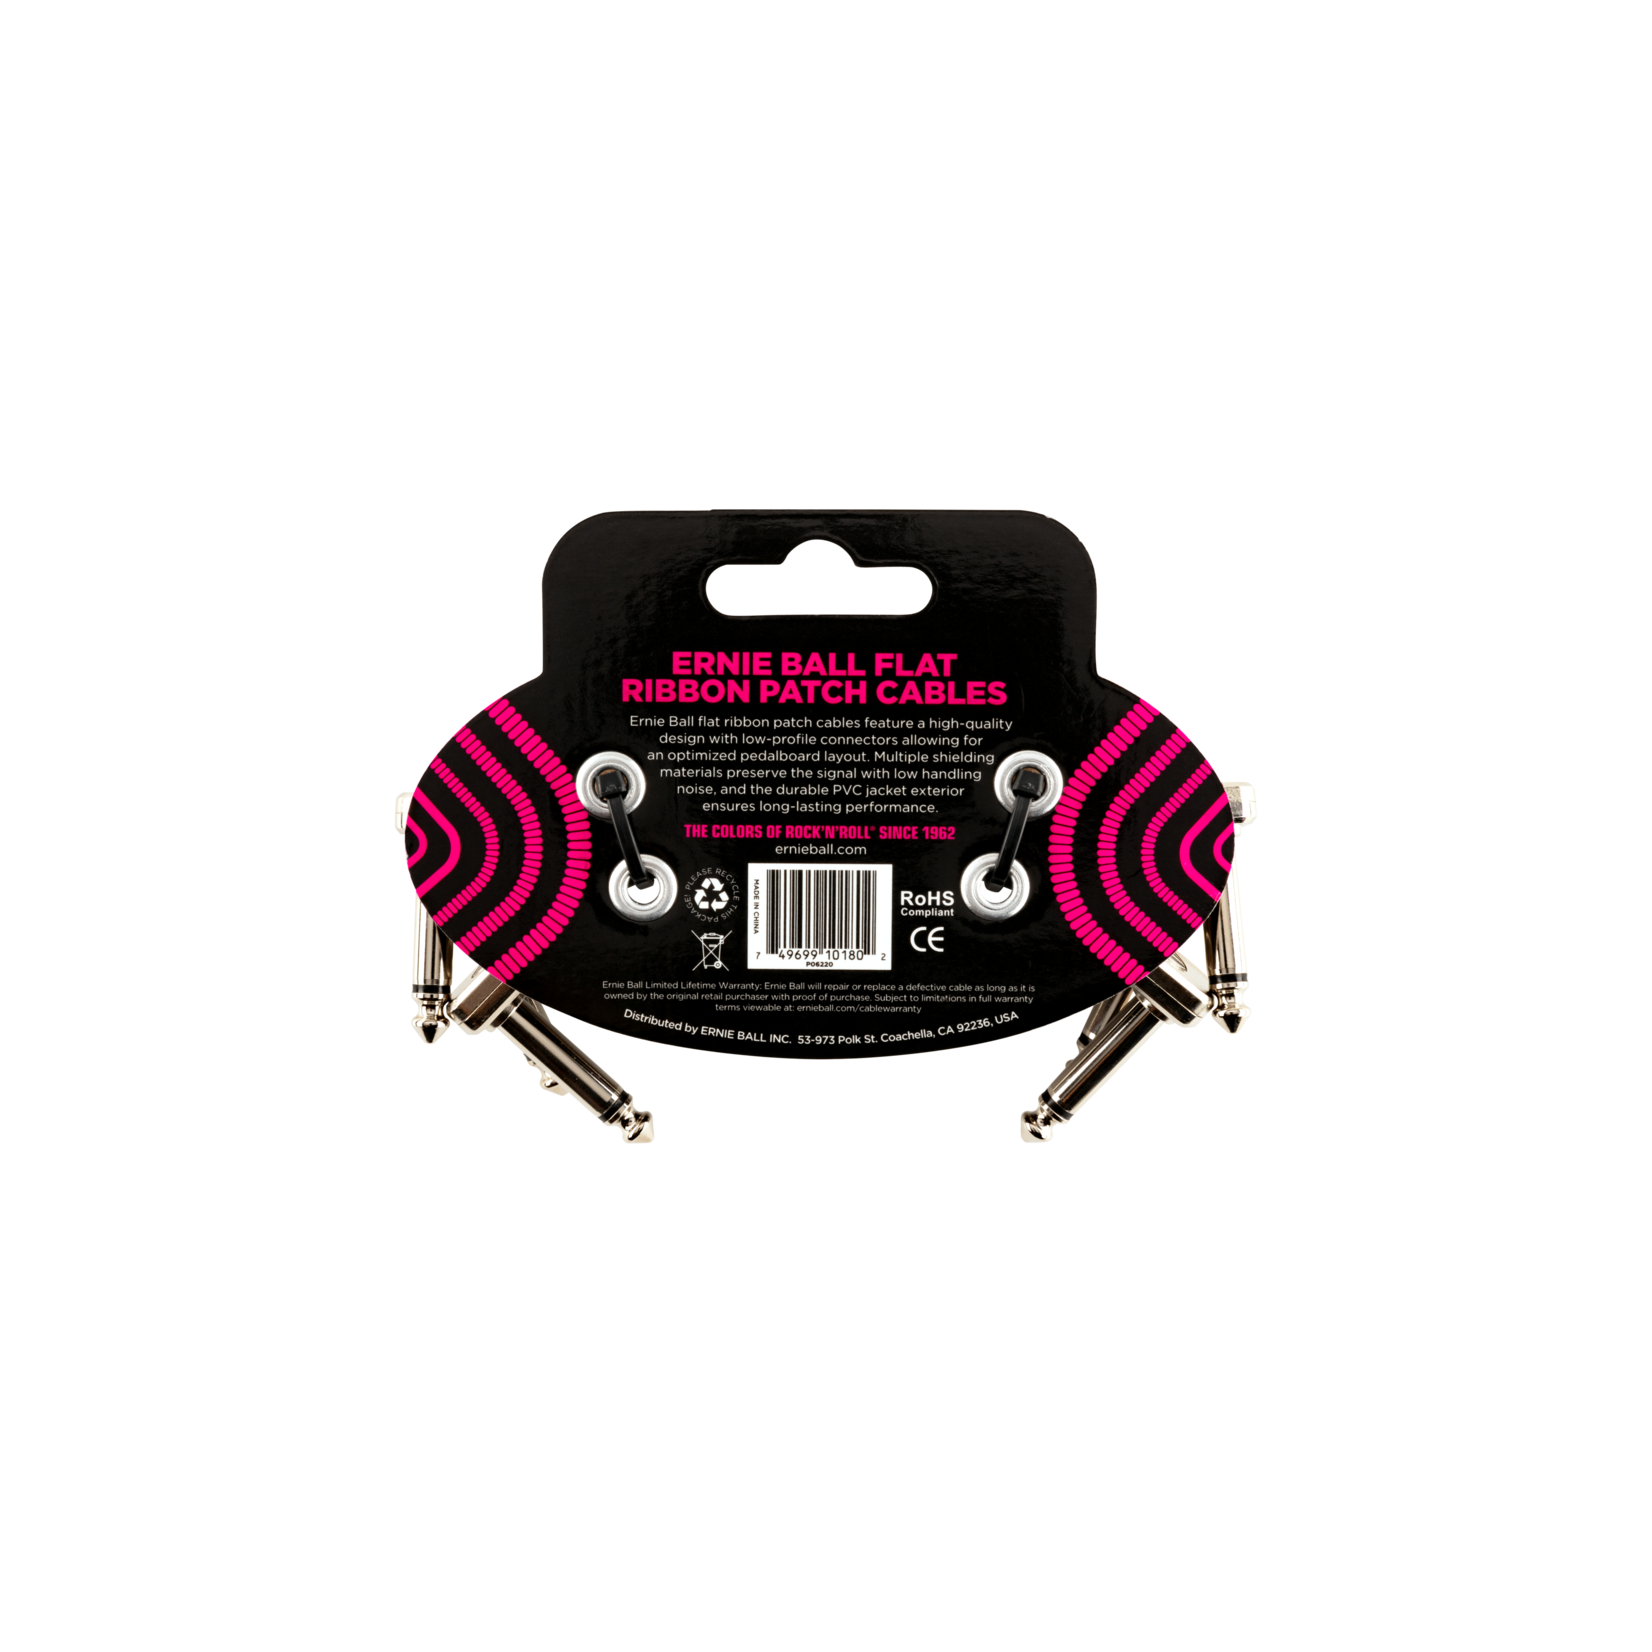 Ernie Ball Ernie Ball 3 inch Flat Ribbon Patch Cable 3-Pack